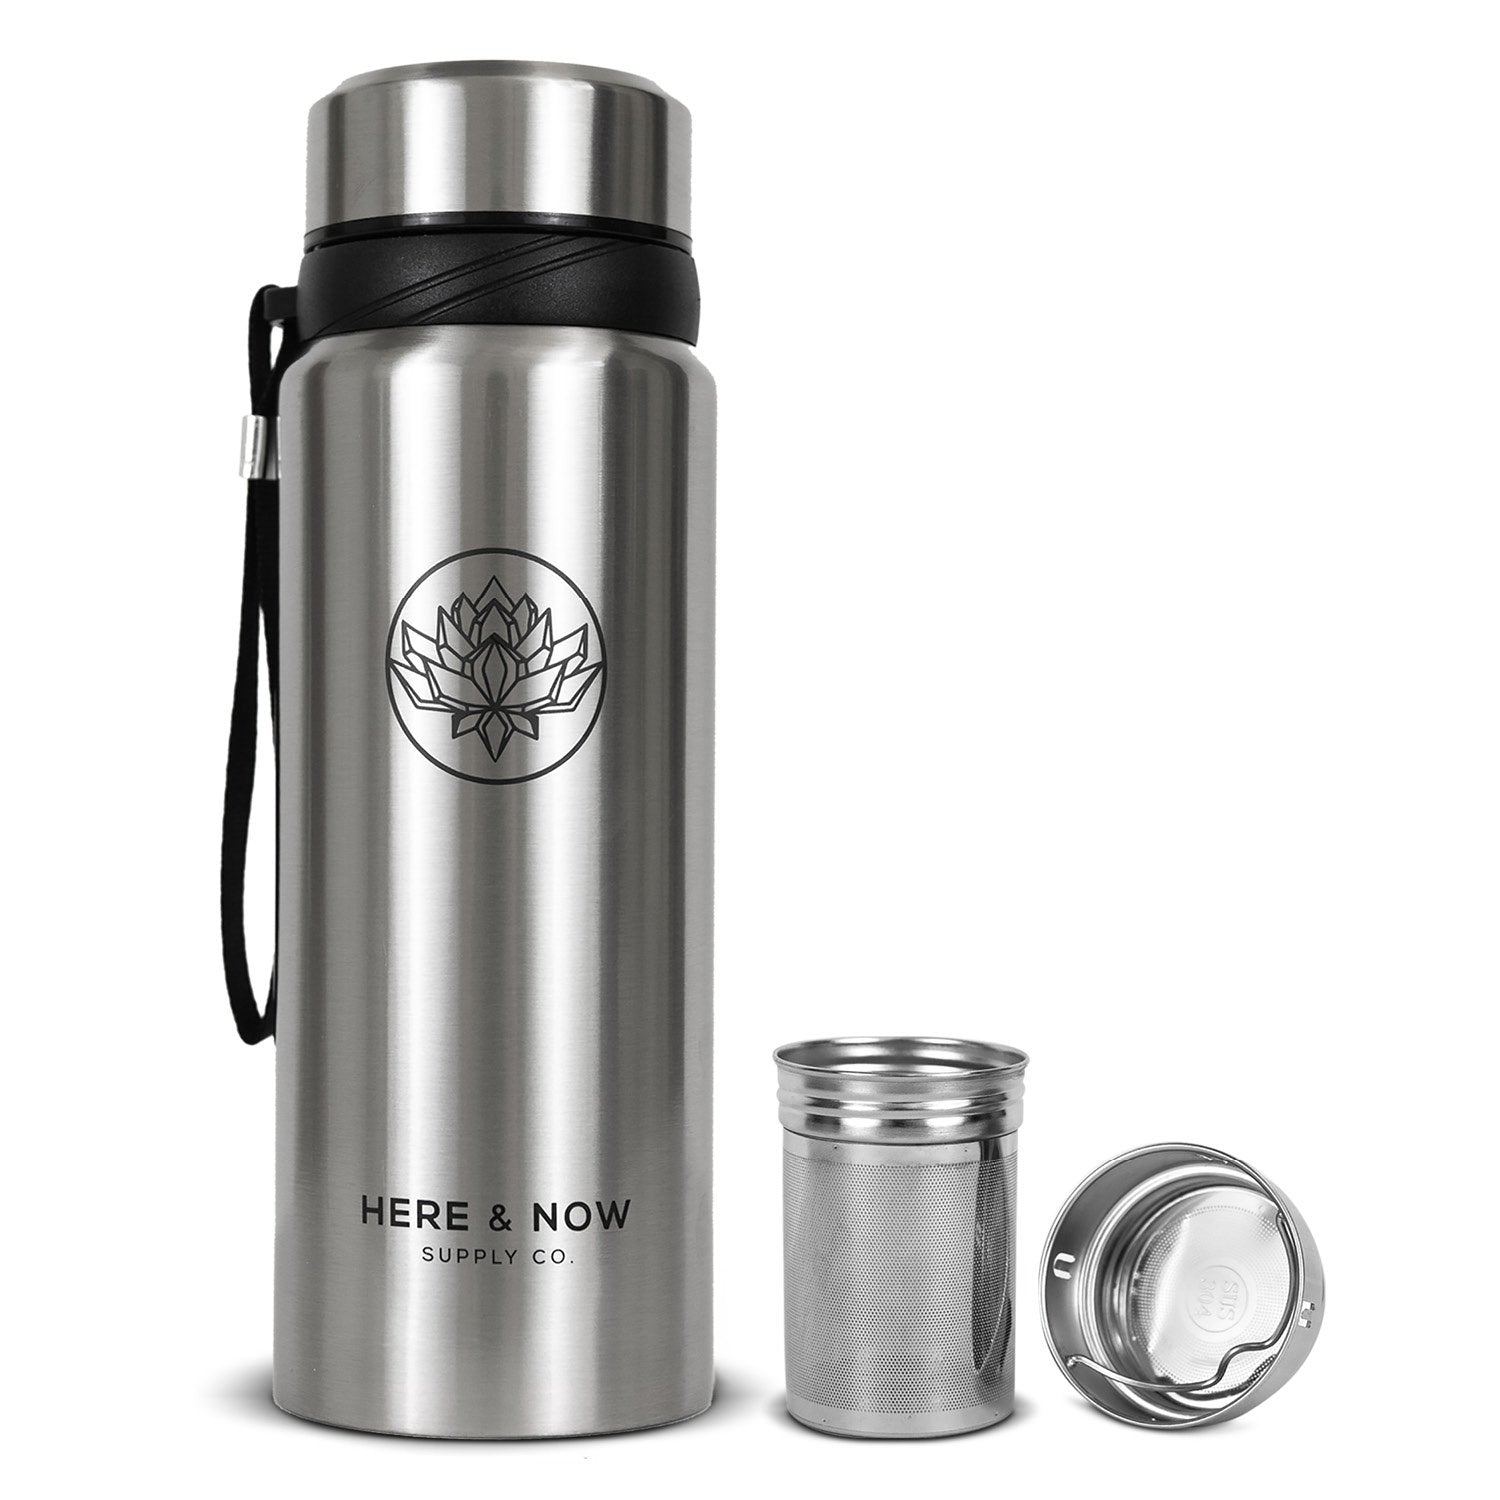 Nova - 25 oz Infuser Bottle Infuser Bottle Here & Now Supply Co. Cosmic Silver #color_cosmic-silver